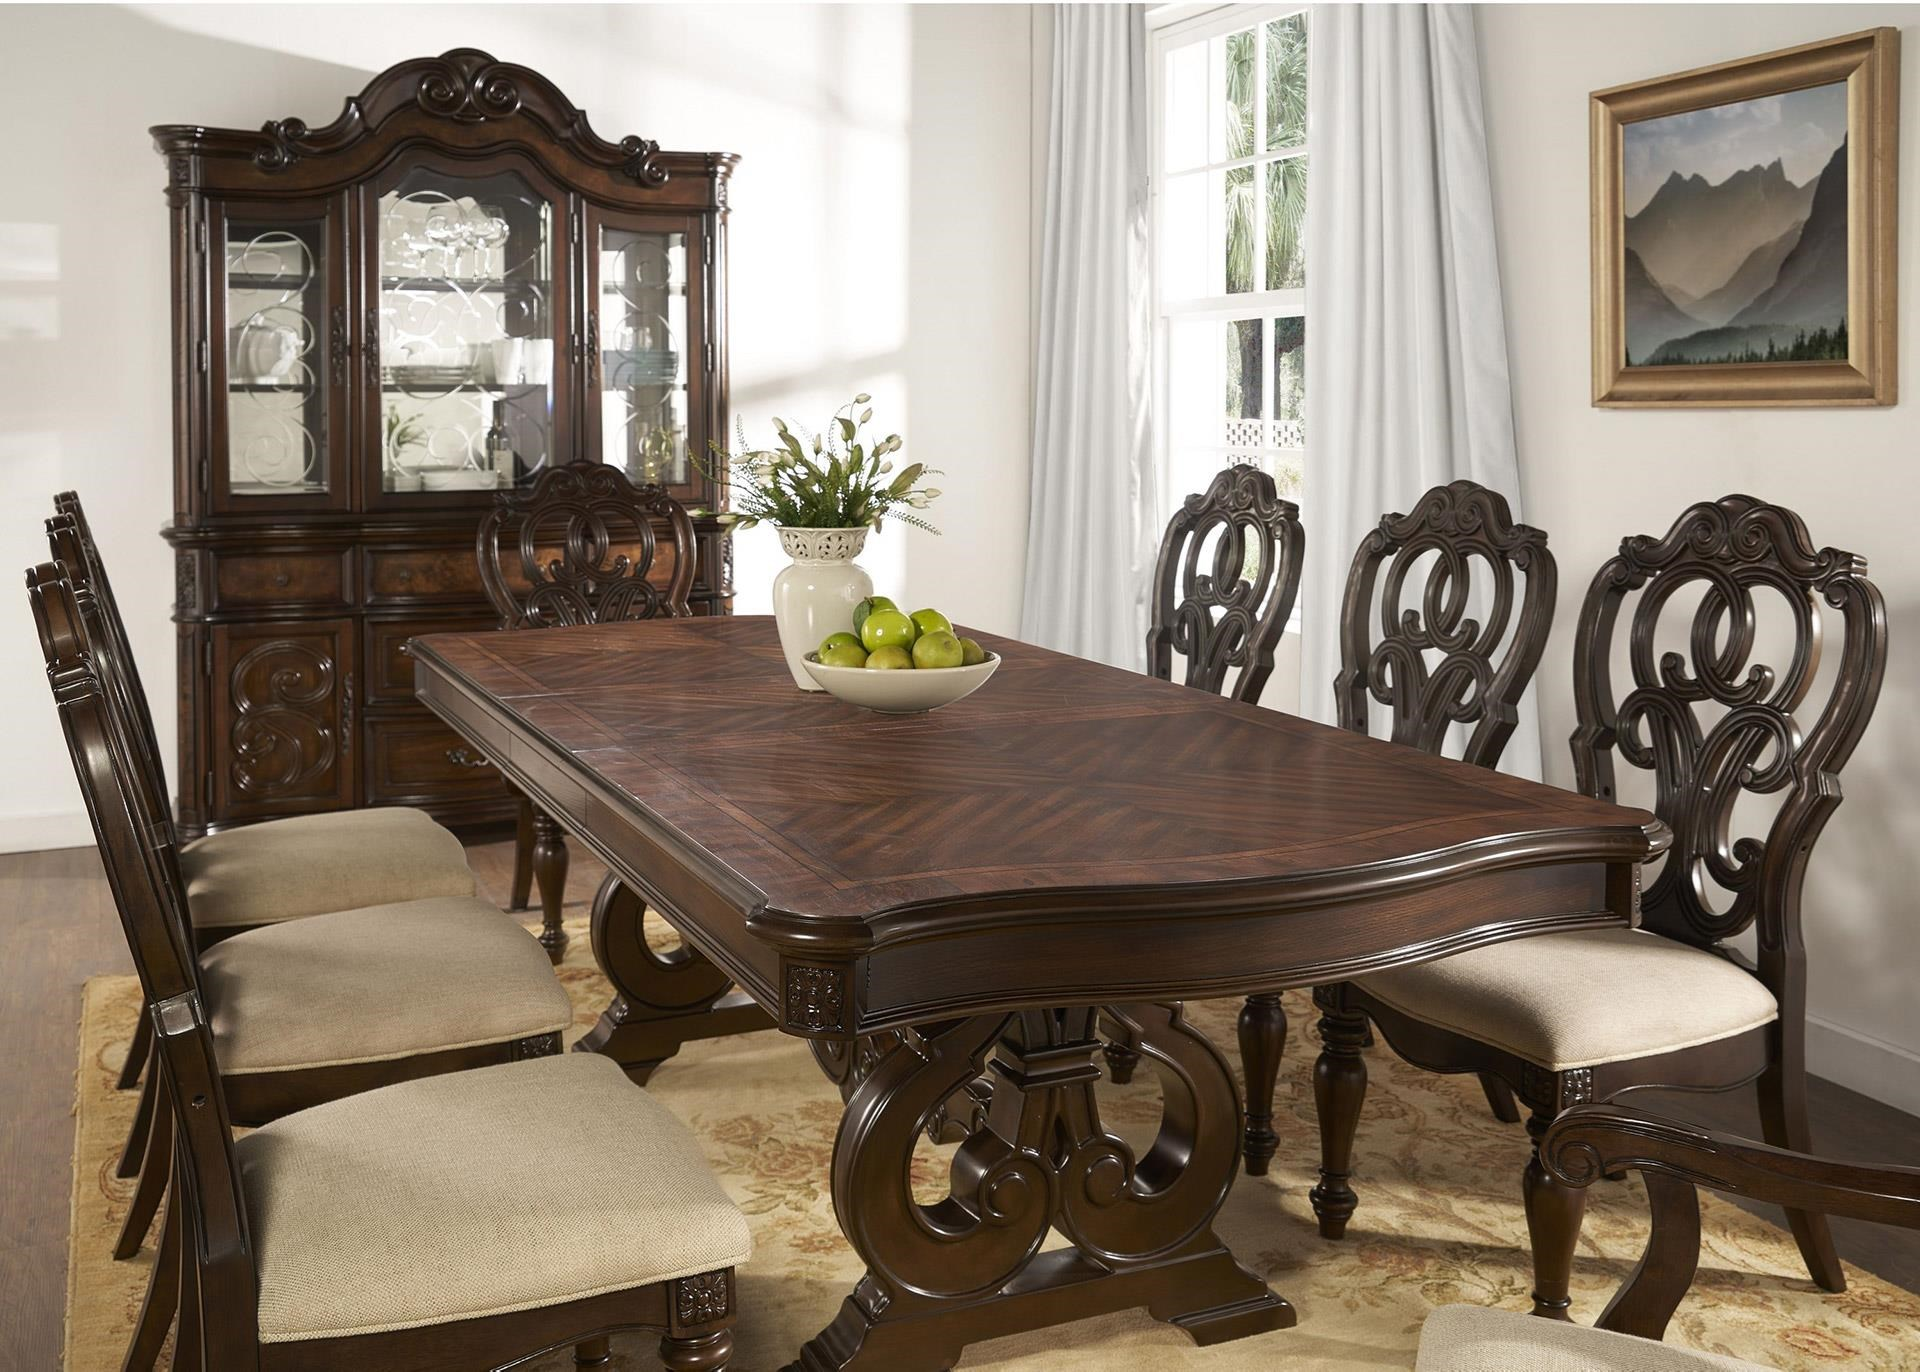 Pedestal Table with 6 Chairs